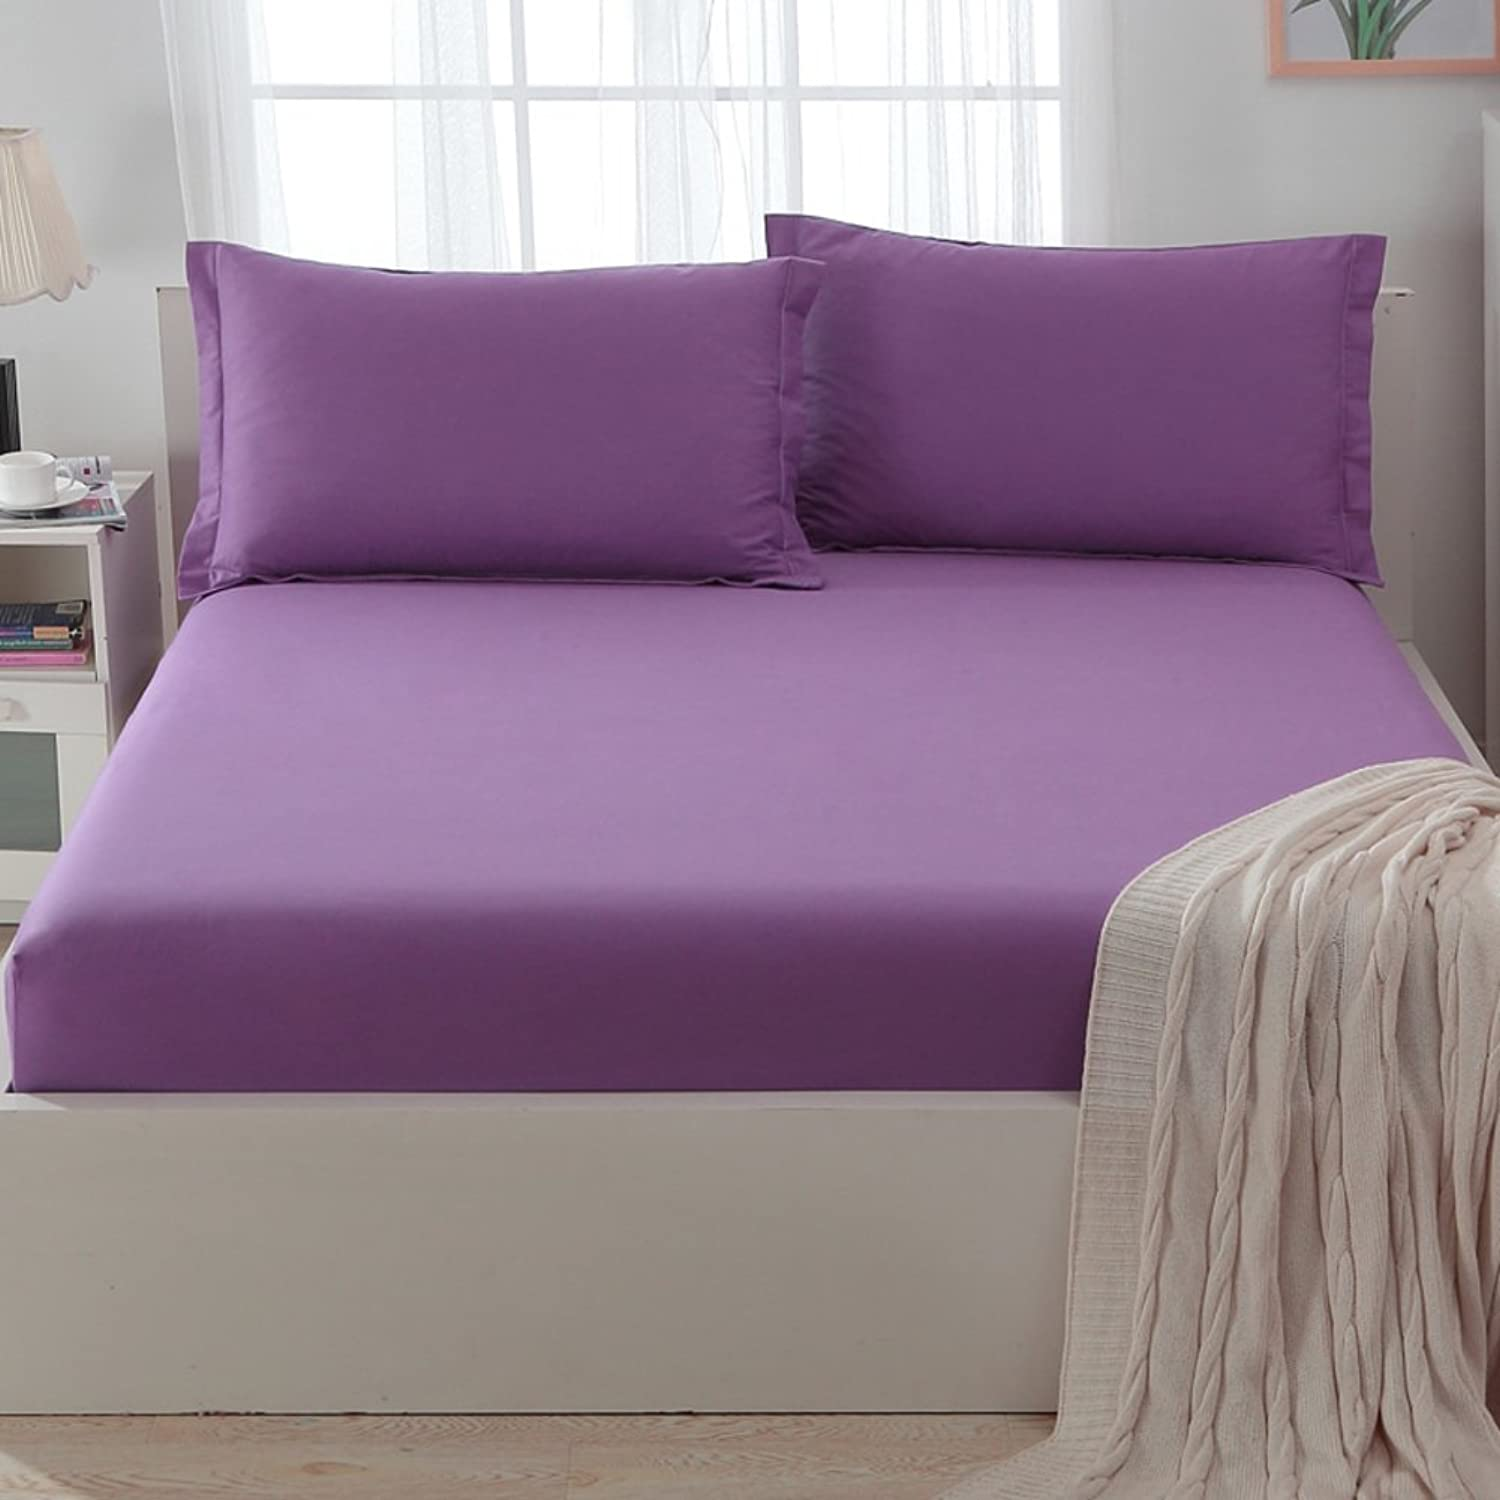 Cotton Bed Cover,Single Piece Cotton Hypoallergenic Mattress Cover Mattress Over 1.5m Sheets 1.8m Bed Cover with Split Corners Pleated Styling-L 150x200cm(59x79inch)